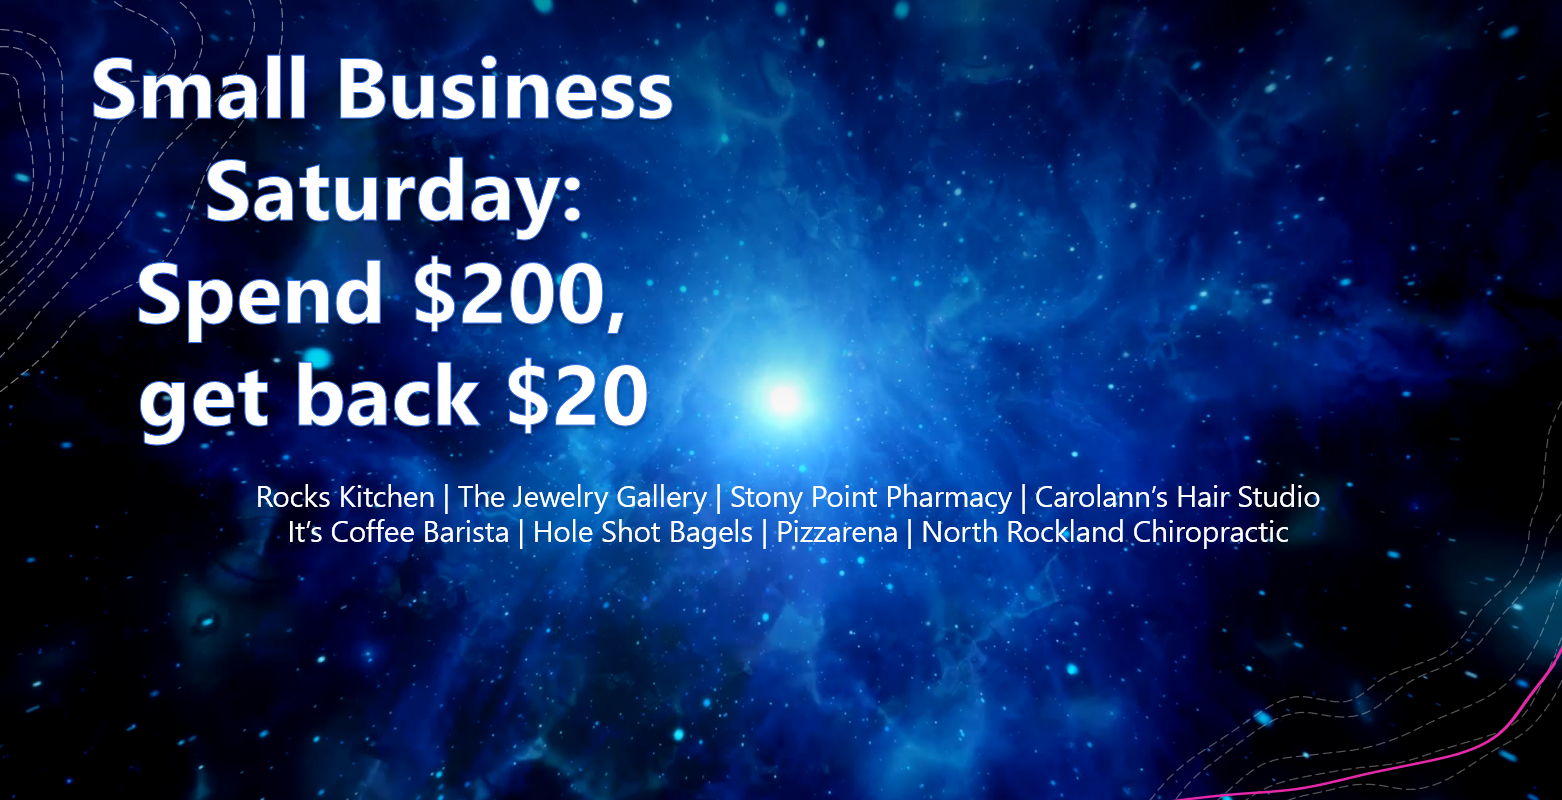 Small Business Saturday – $20 Back!